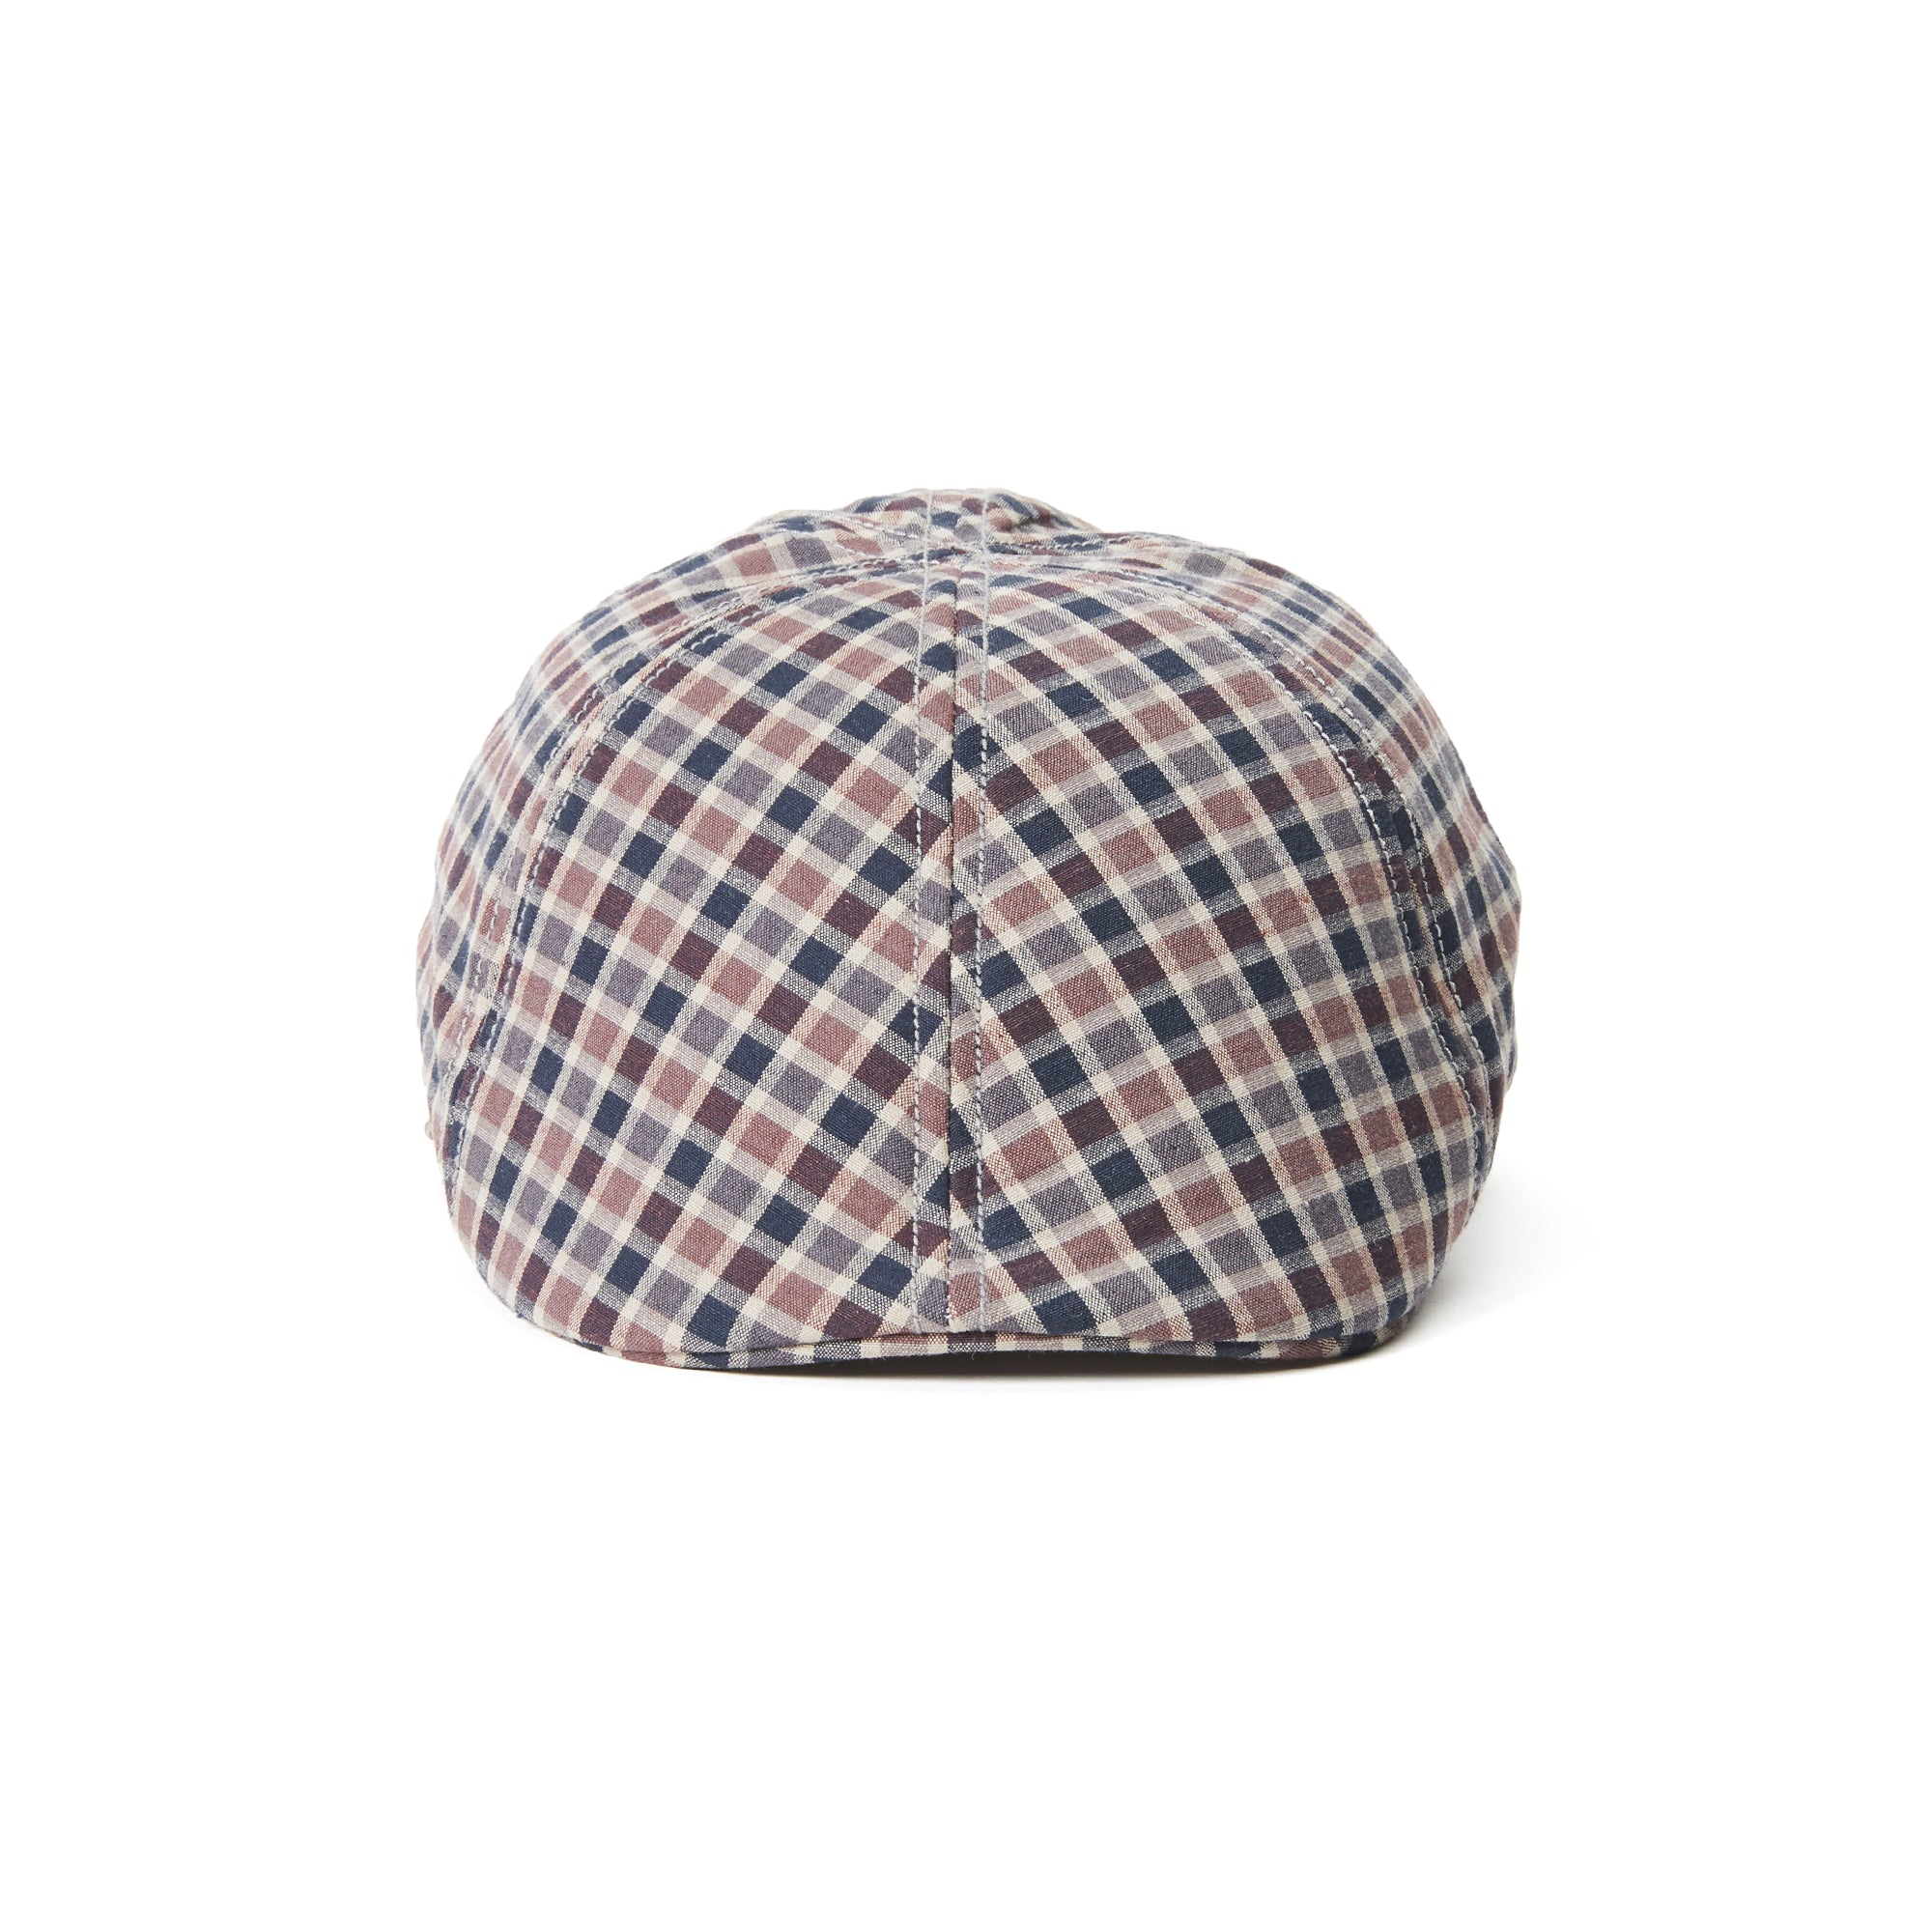 Goorin Bros. illinois beach cotton duckbill flatcap Blue front view